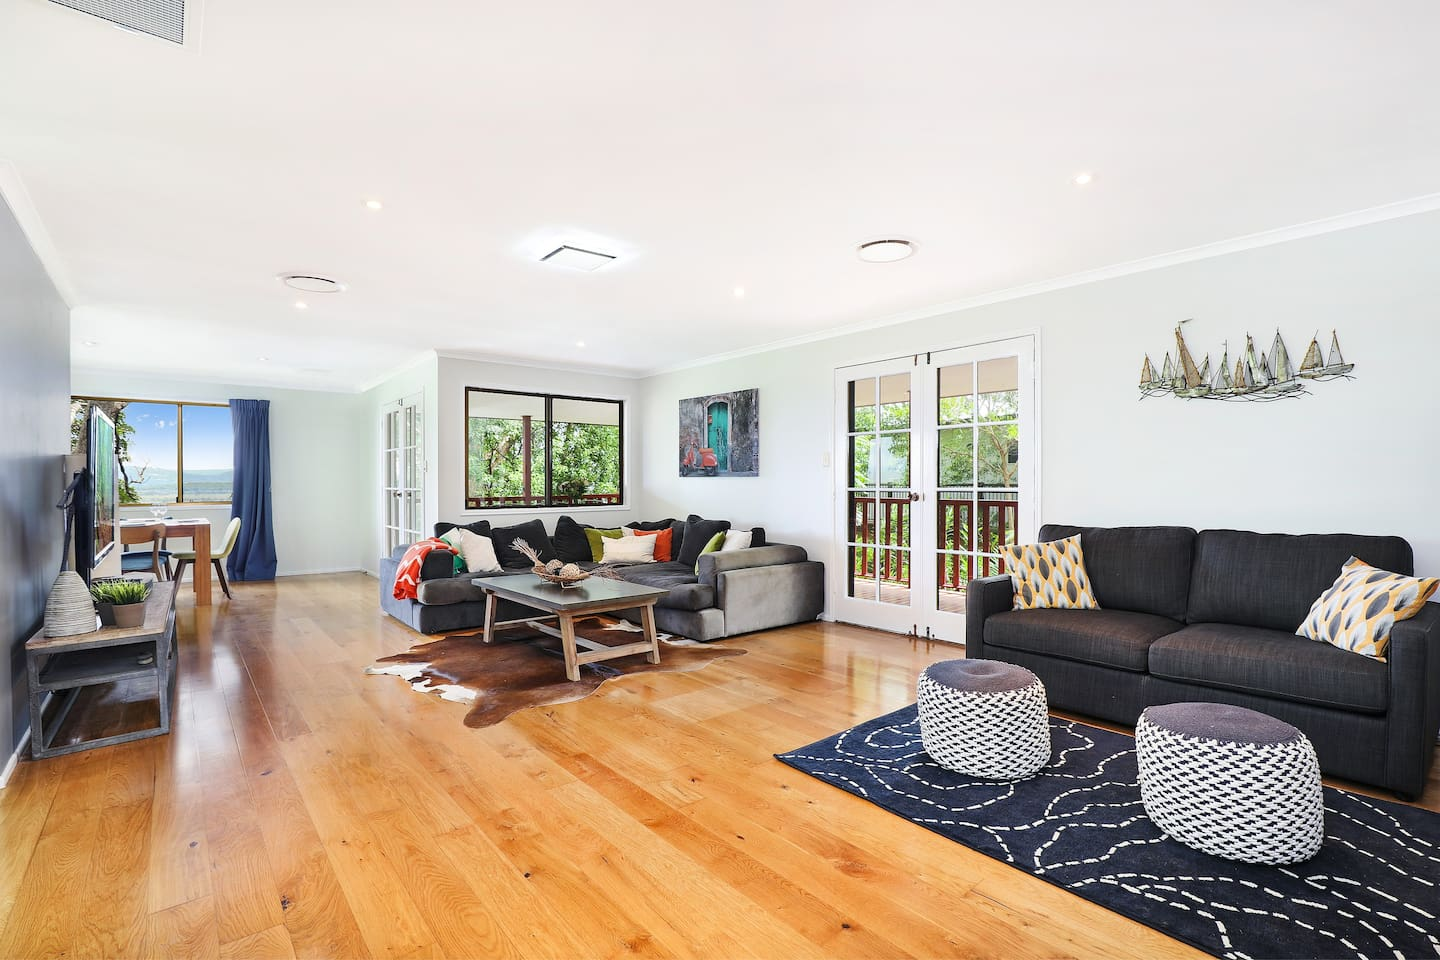 Main Lounge Room/Large Space - Imagine relaxing here after a day spent at beautiful Coolum Beach!   Sofa Bed to the right.